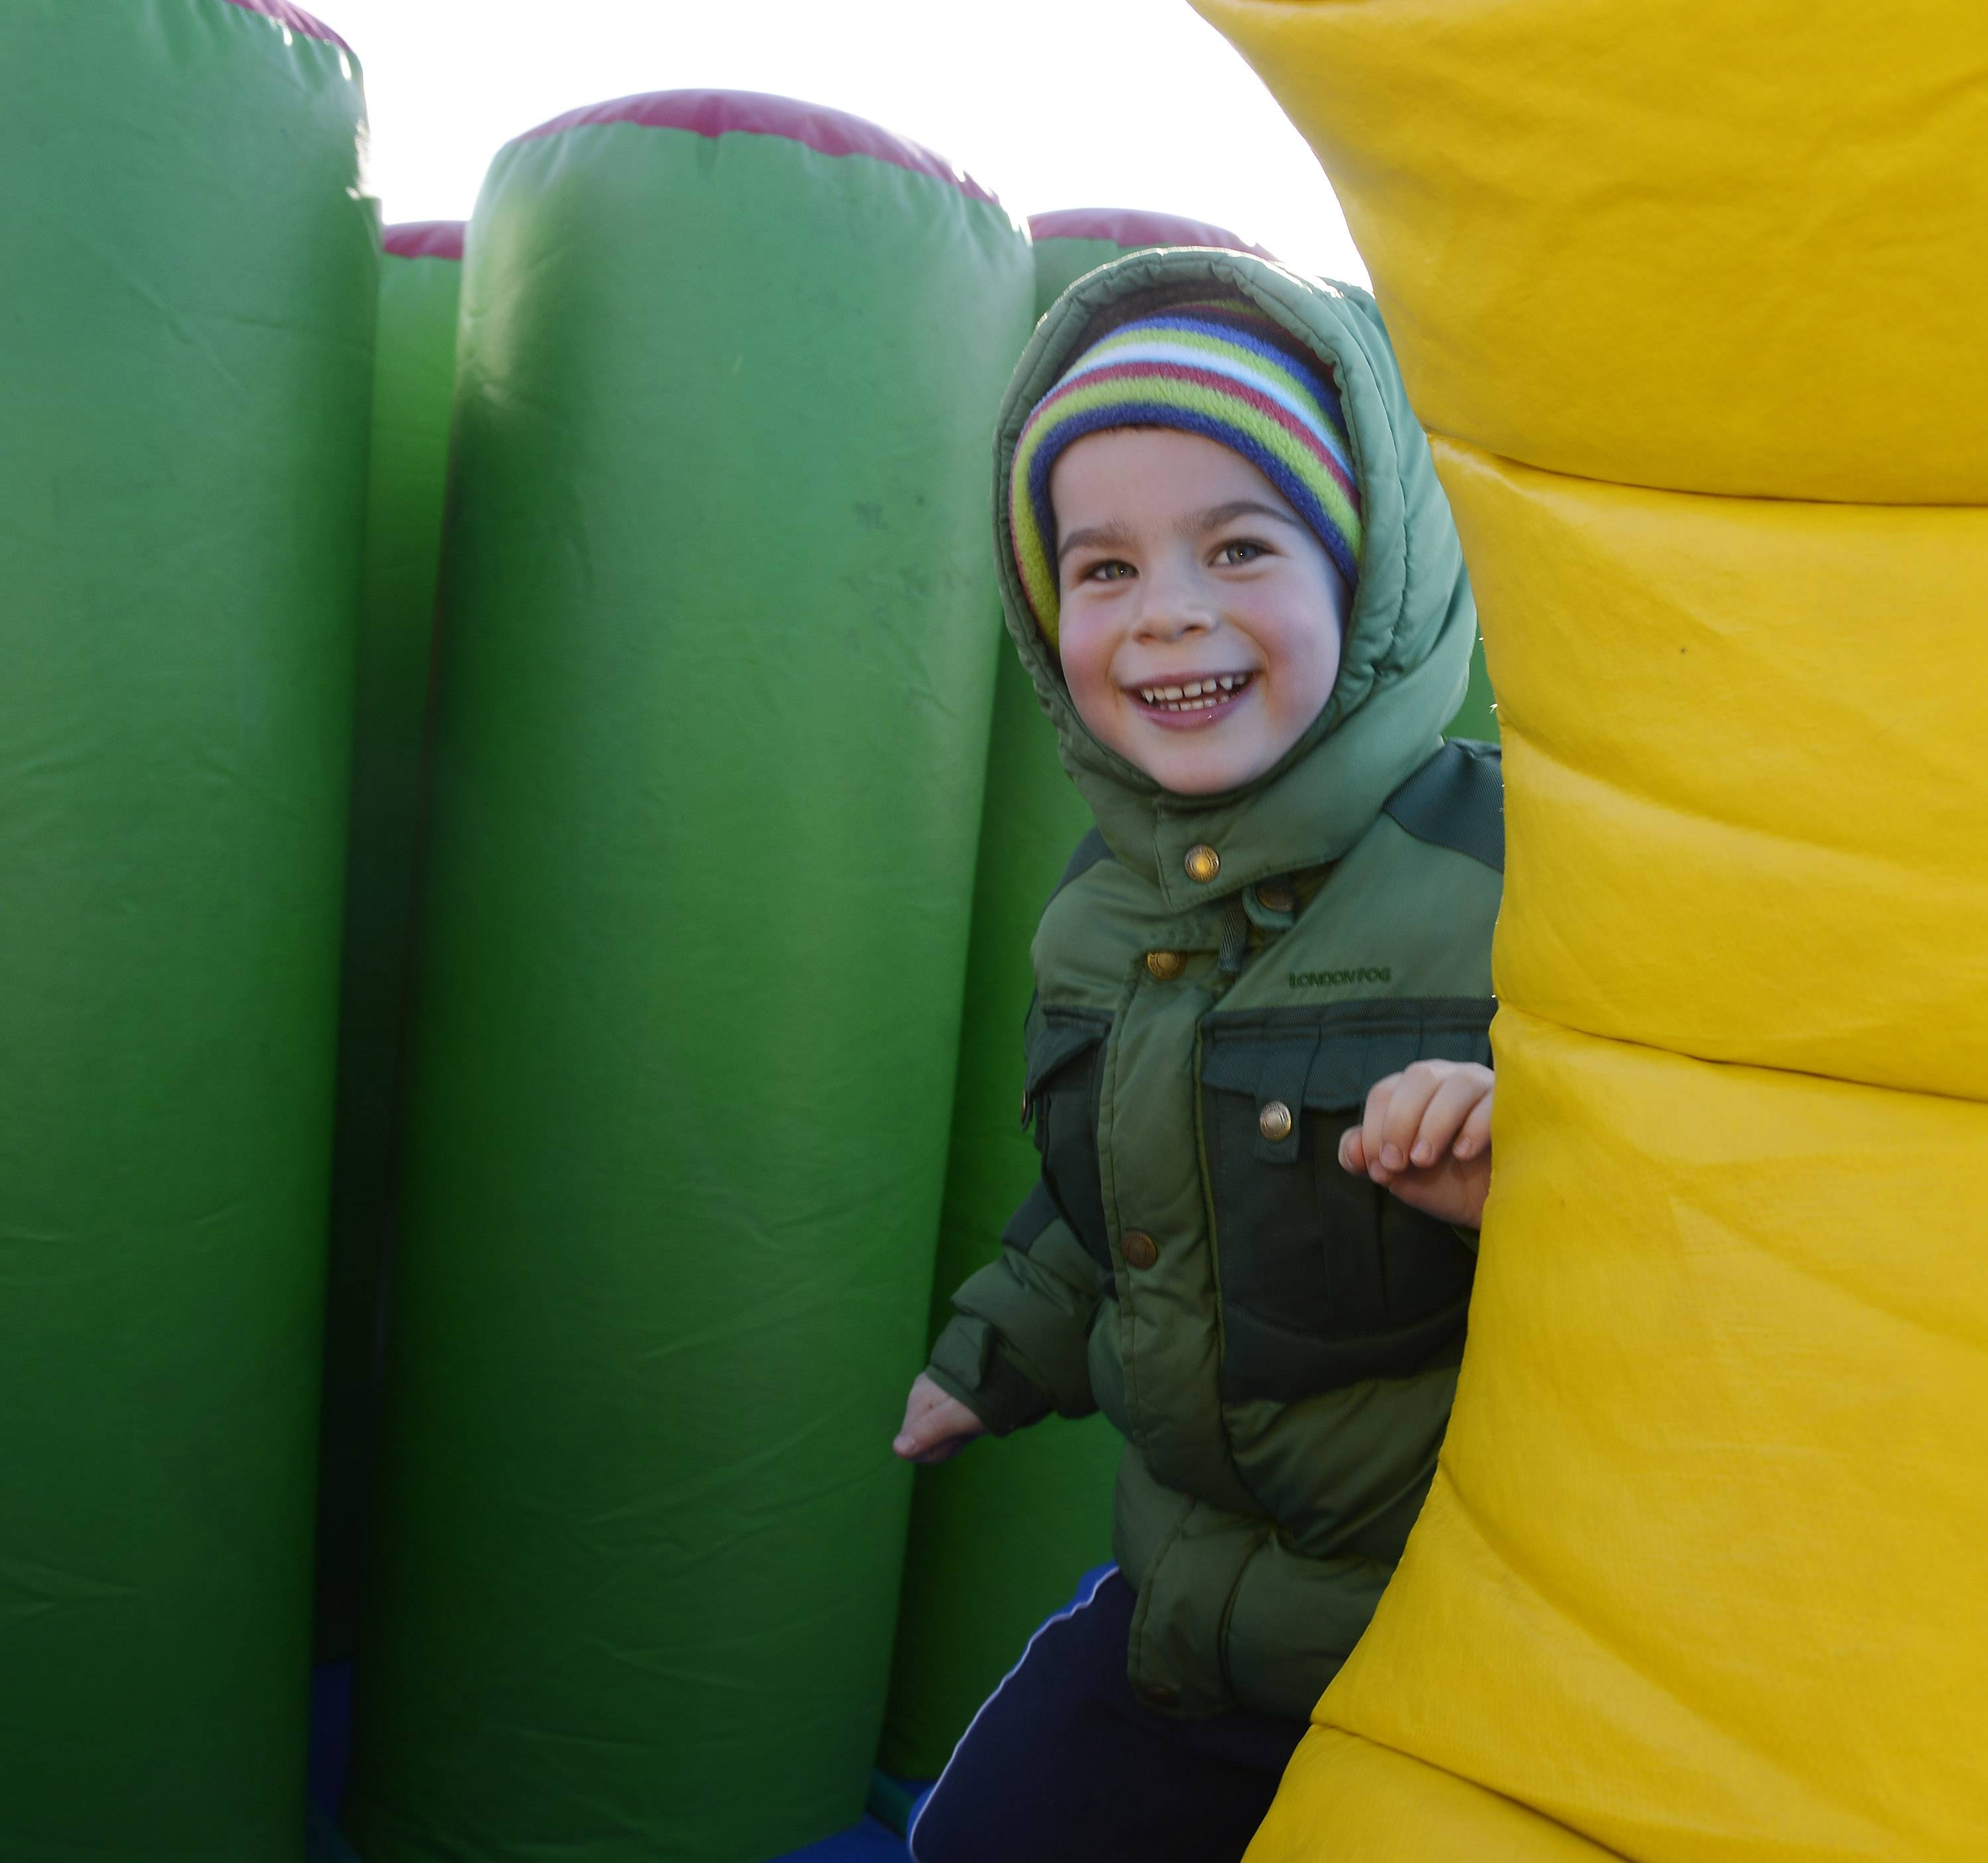 JOE LEWNARD/jlewnard@dailyherald.comDanny Lawitz, 4, of Wauconda has fun on the inflatable play set Saturday during the Winter Wonderland Carnival at Community Park in Hawthorn Woods.